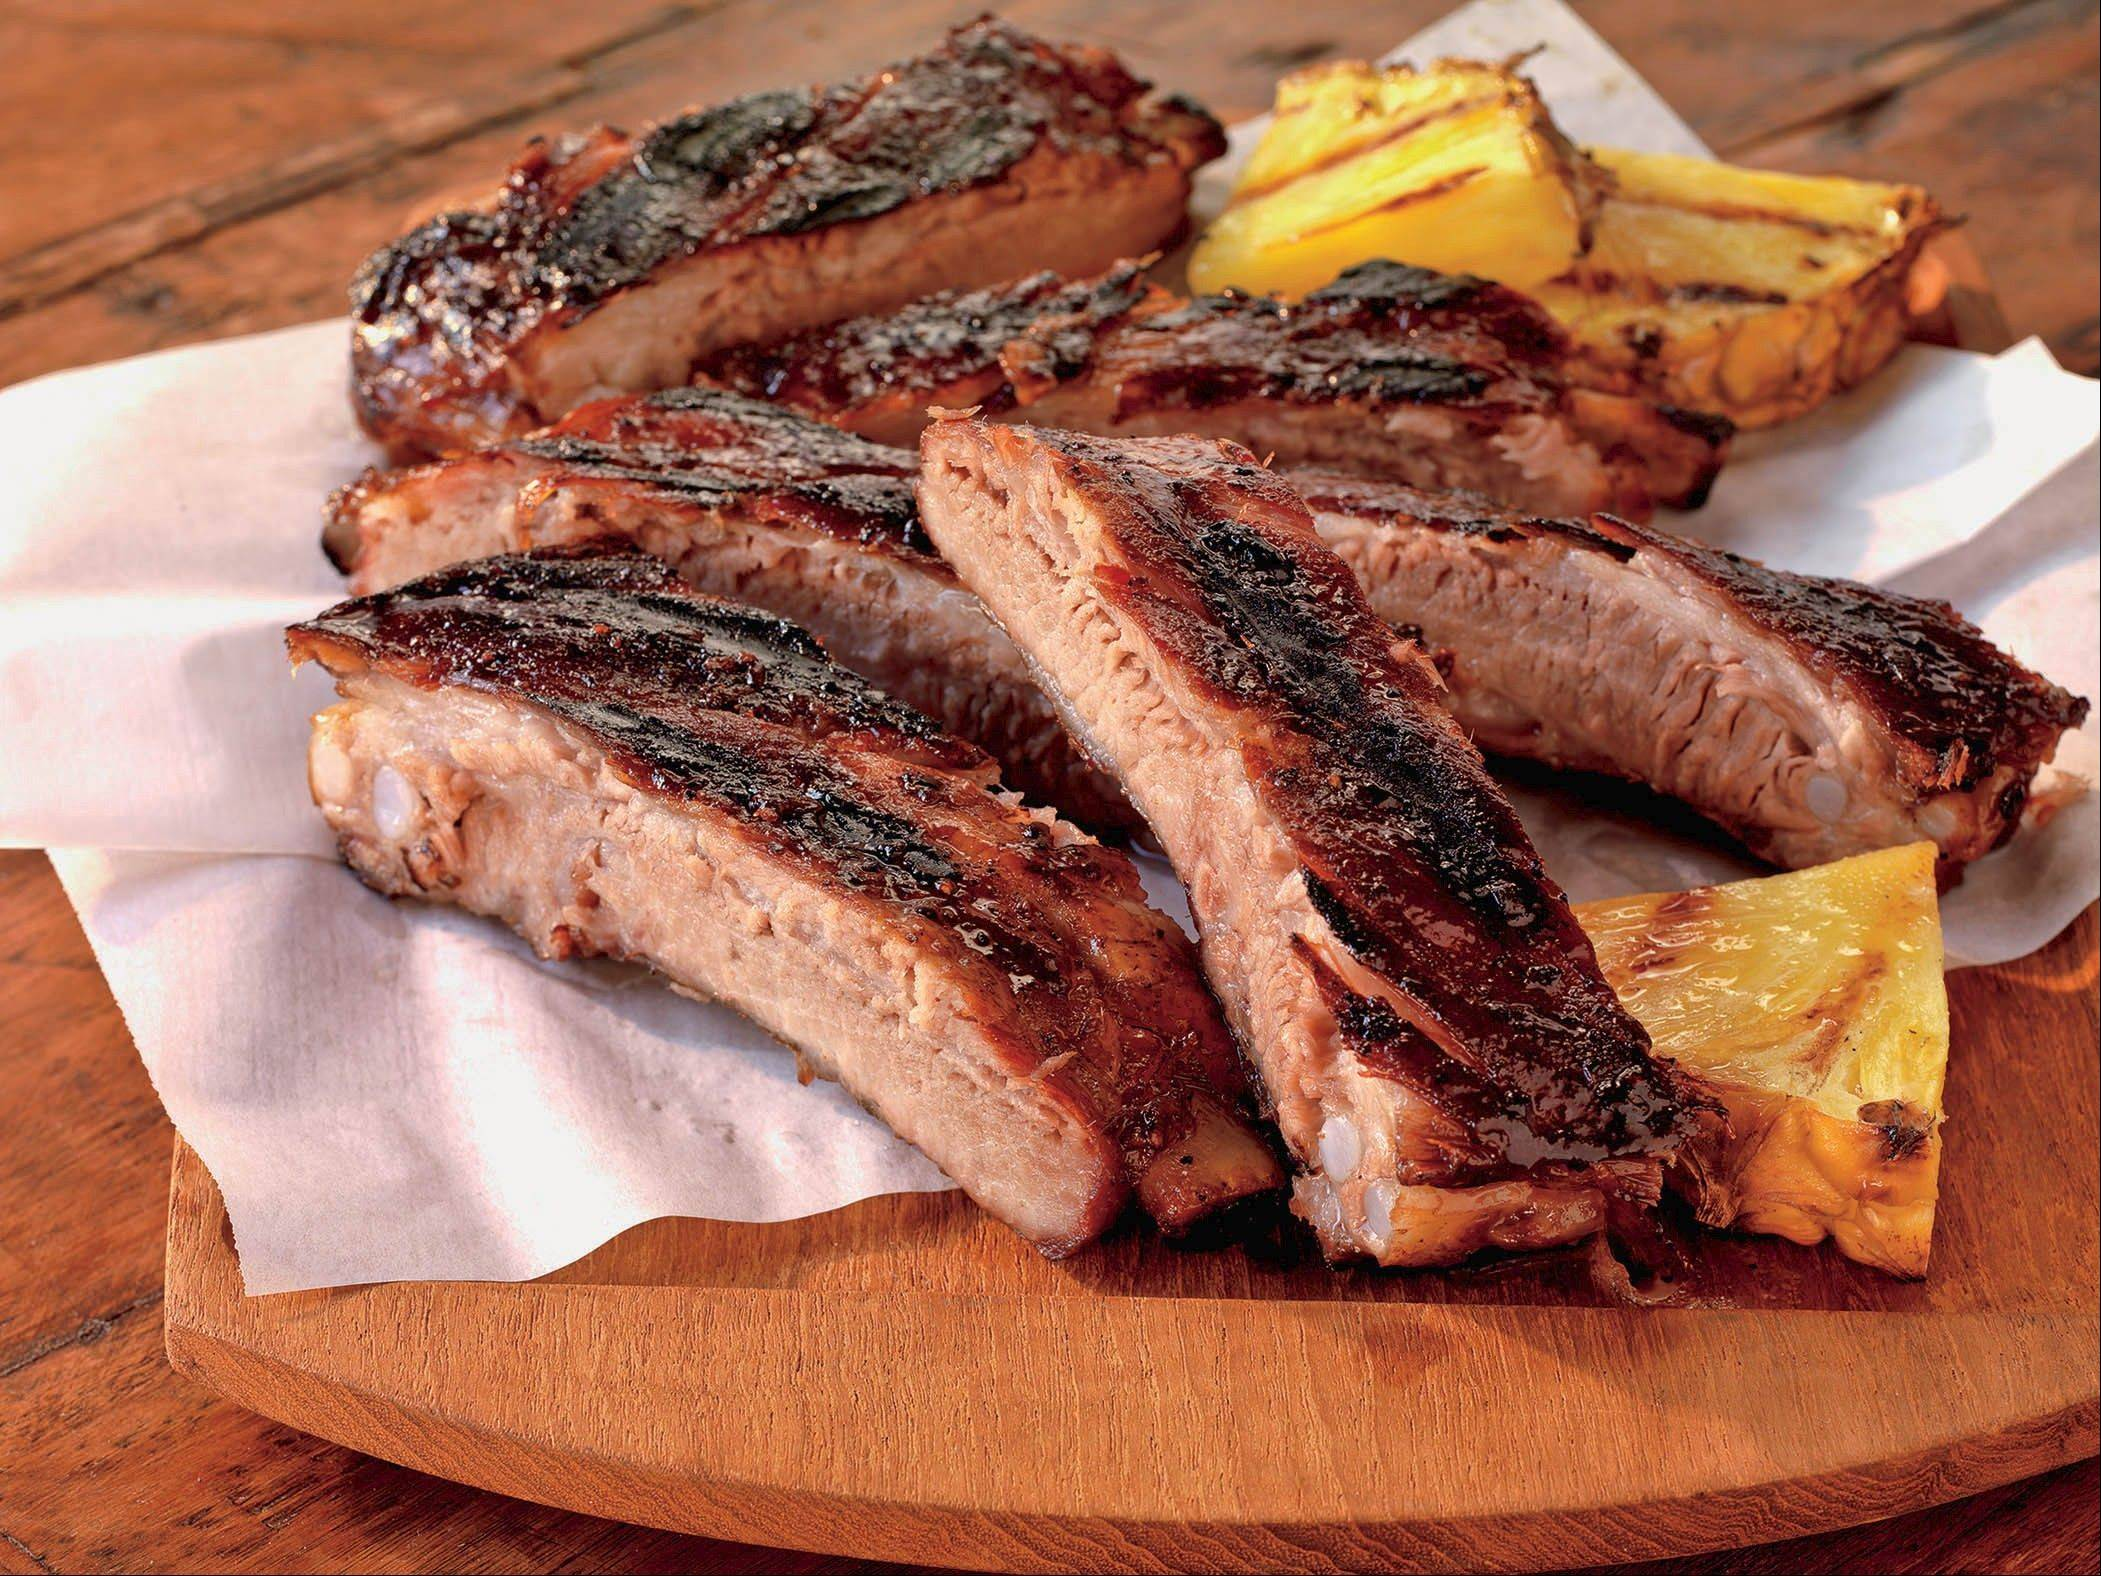 Ginger-Rubbed Country Spareribs with Apricot Glaze is just one way to enjoy ribs this Memorial Day weekend. Get this and other recipes on Pages 5 and 6.